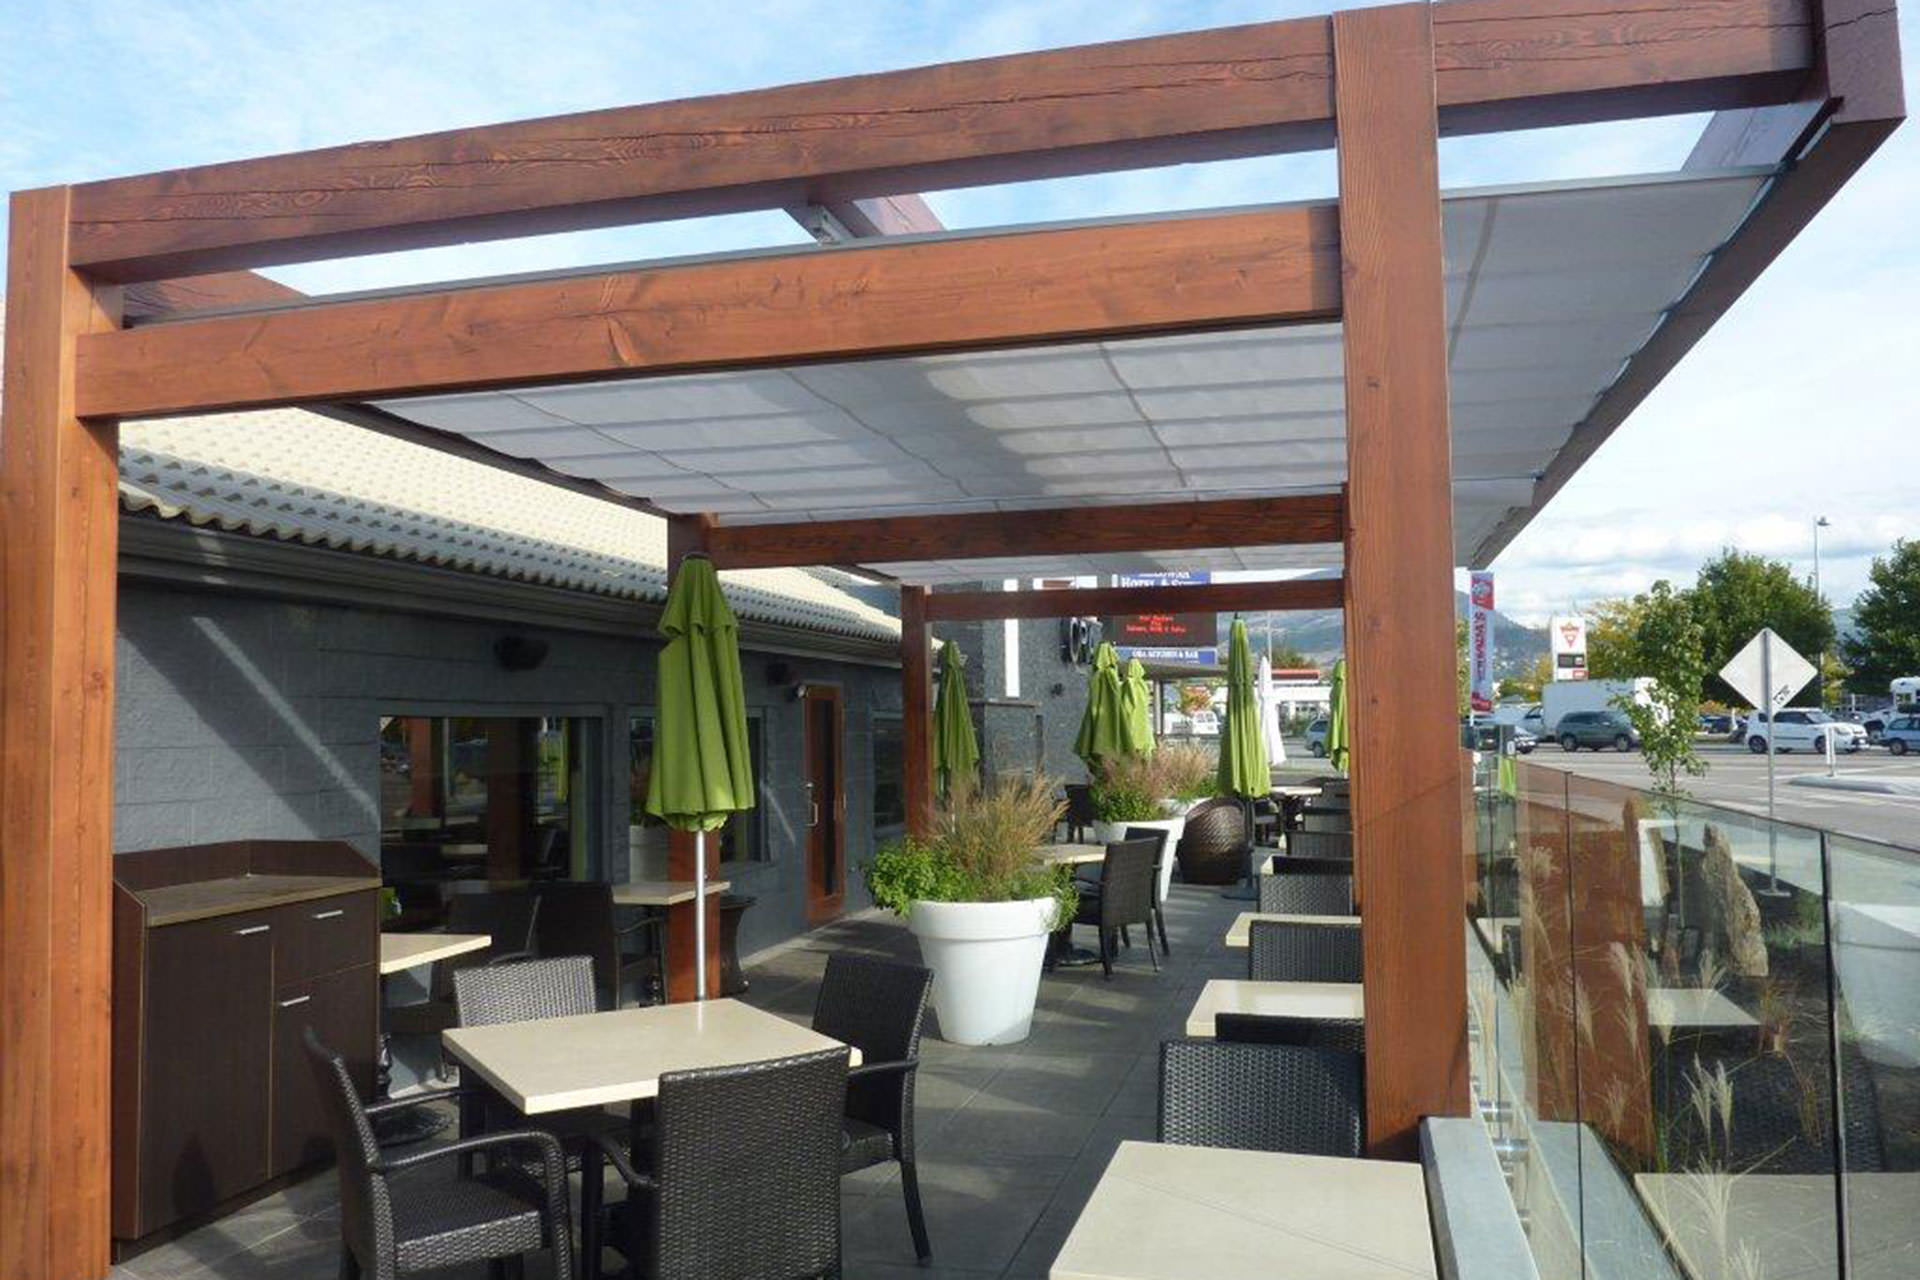 Pergola Design Custom Canopy Ideas From Shadefx